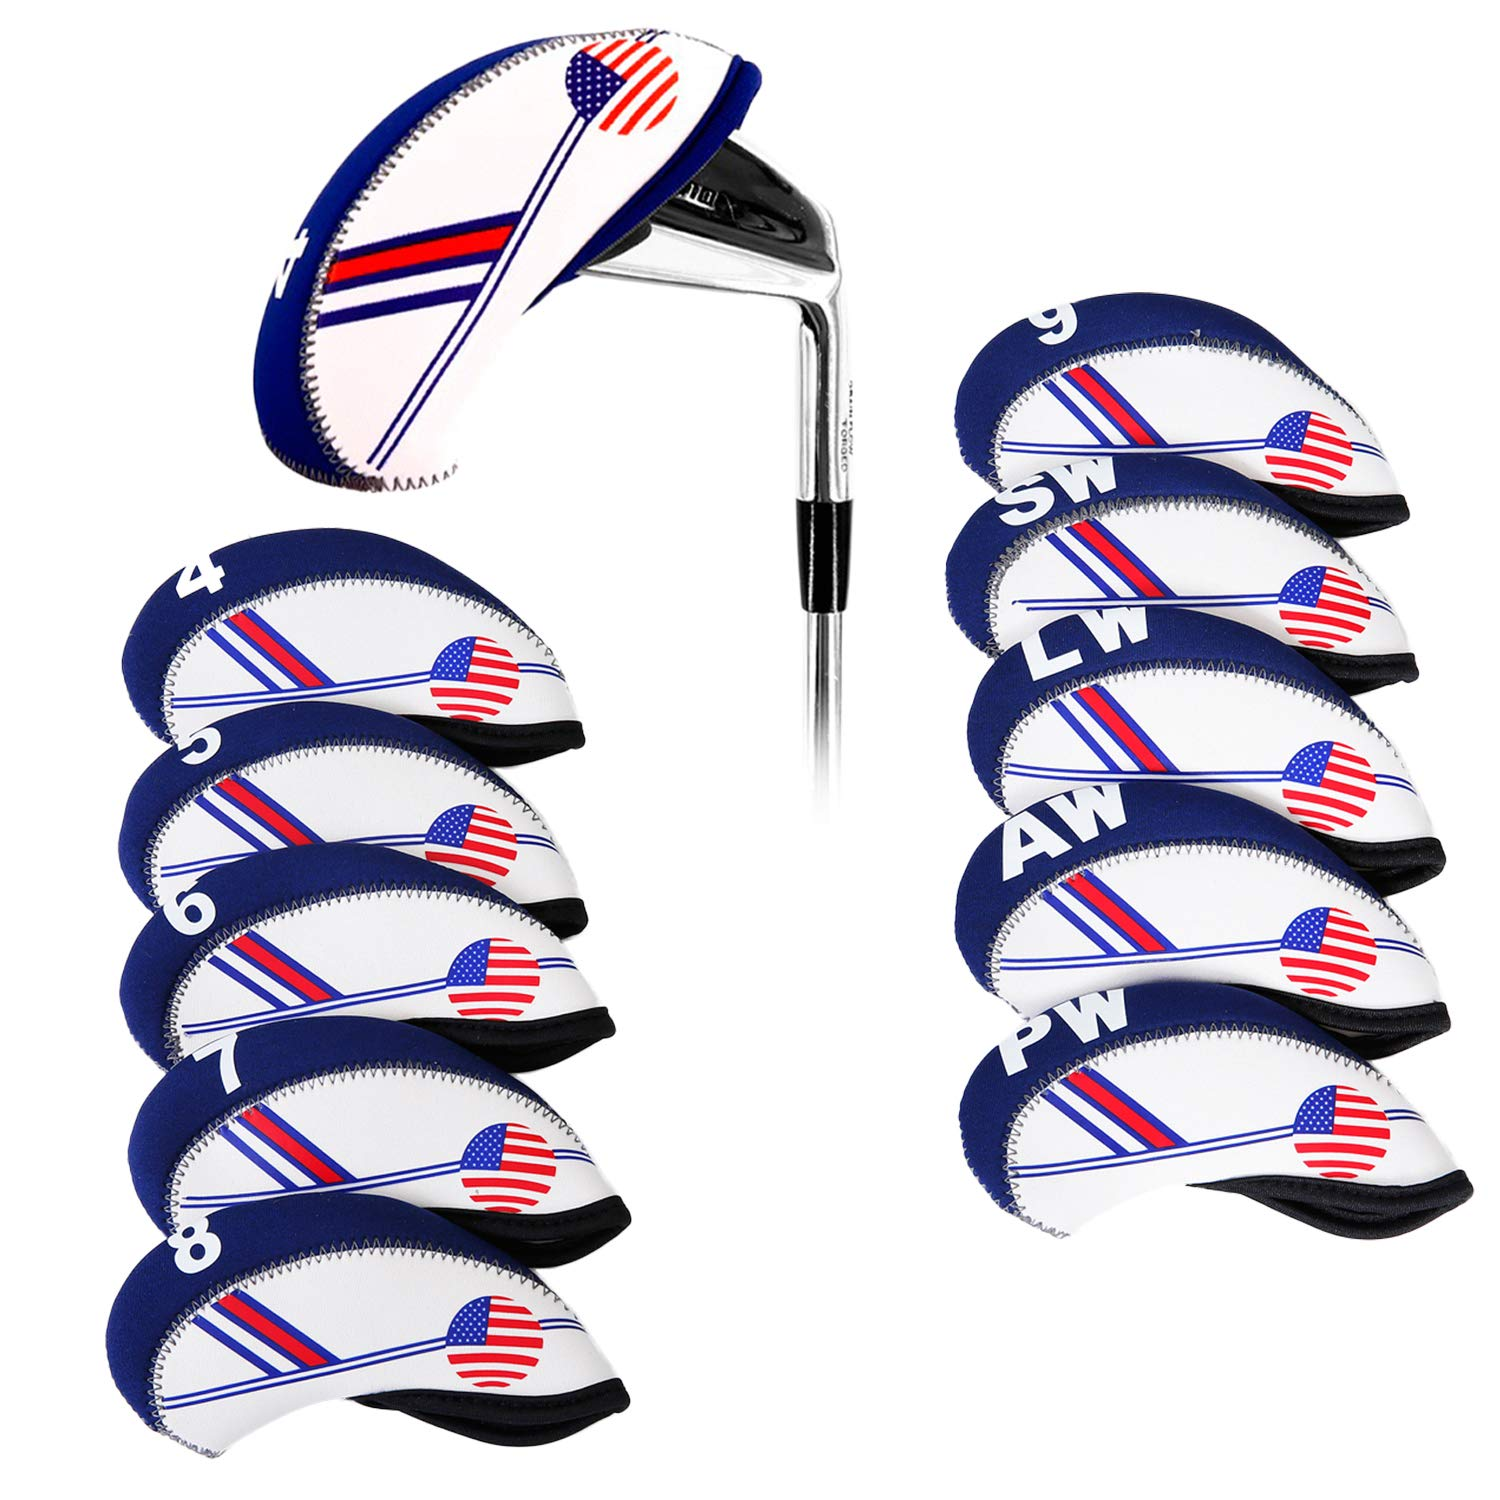 SunTrade 10pcs Golf White & Blue US Flag Neoprene Golf Club Head Cover,for Titleist, Callaway, Ping, Taylormade, Cobra, Nike, Etc.